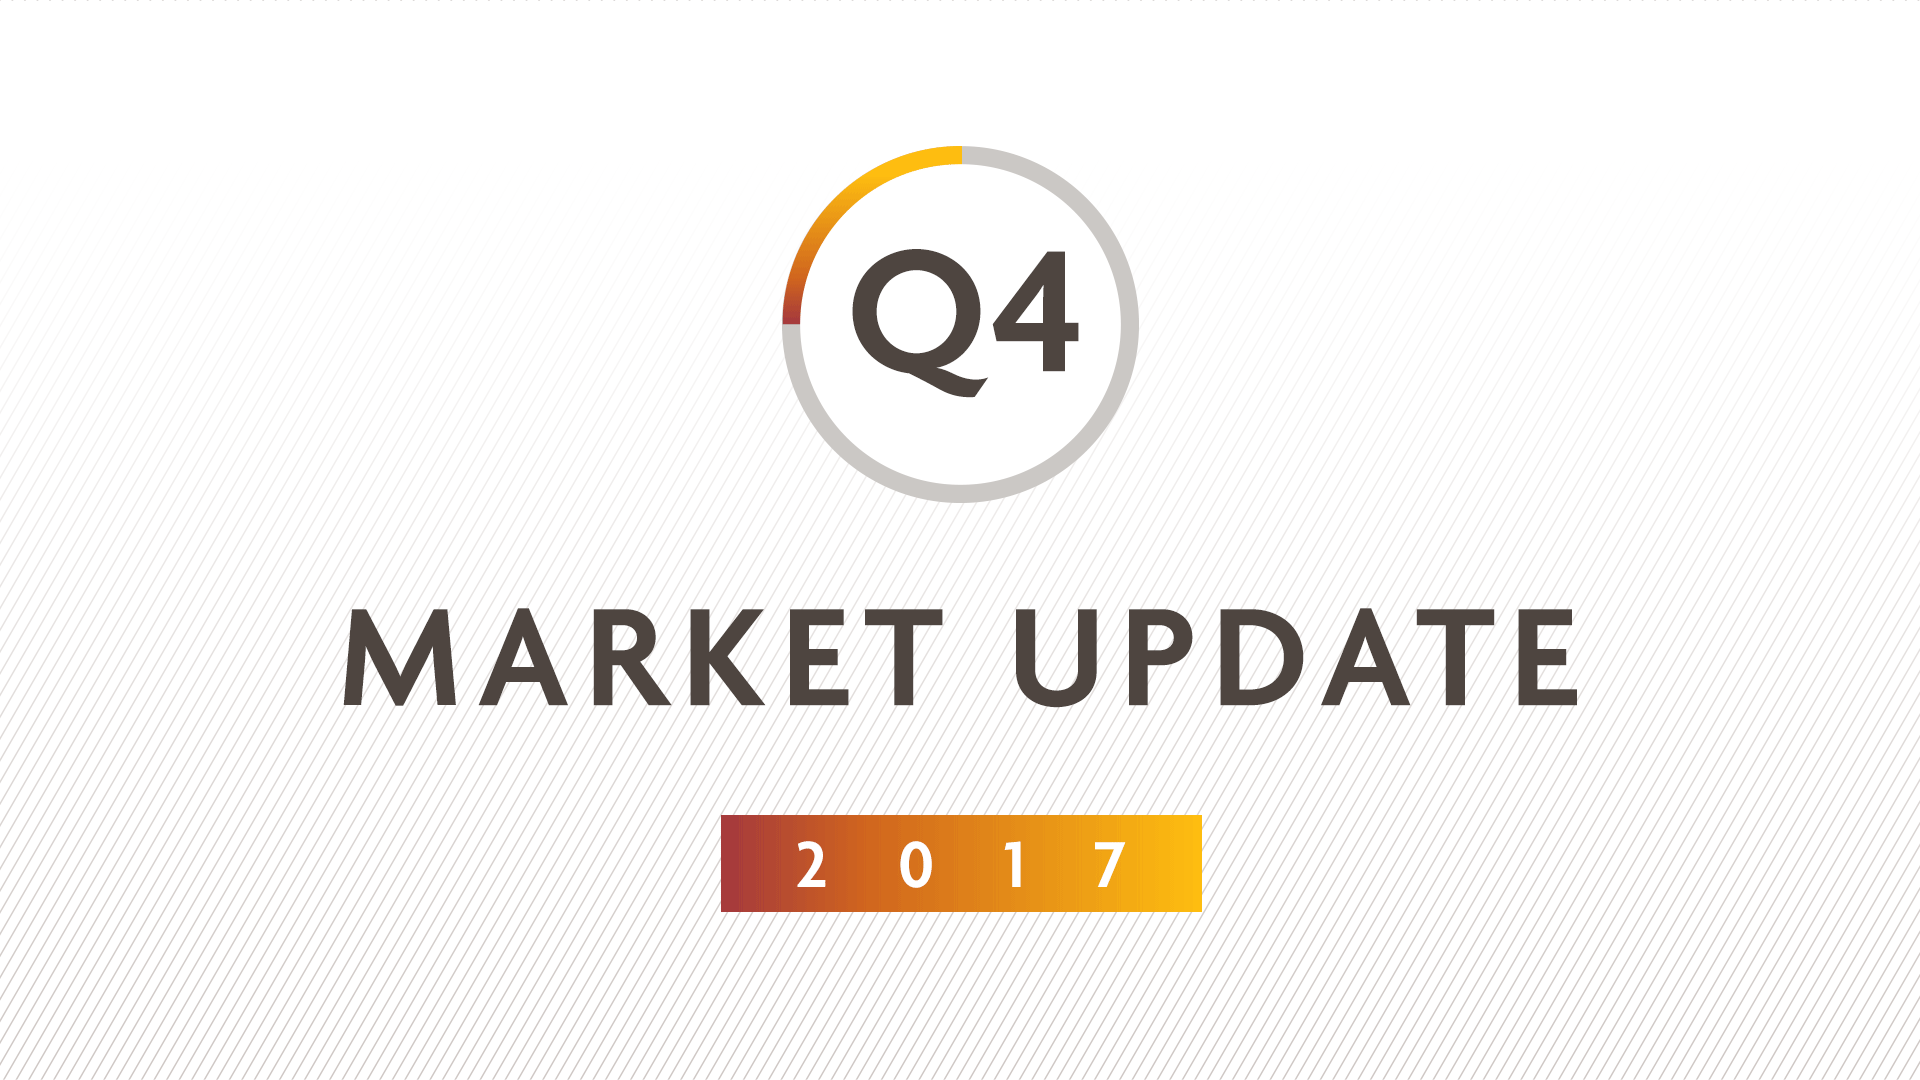 Q4 2017 MARKET UPDATE: Riding the bull. Will markets rally higher in 2018?